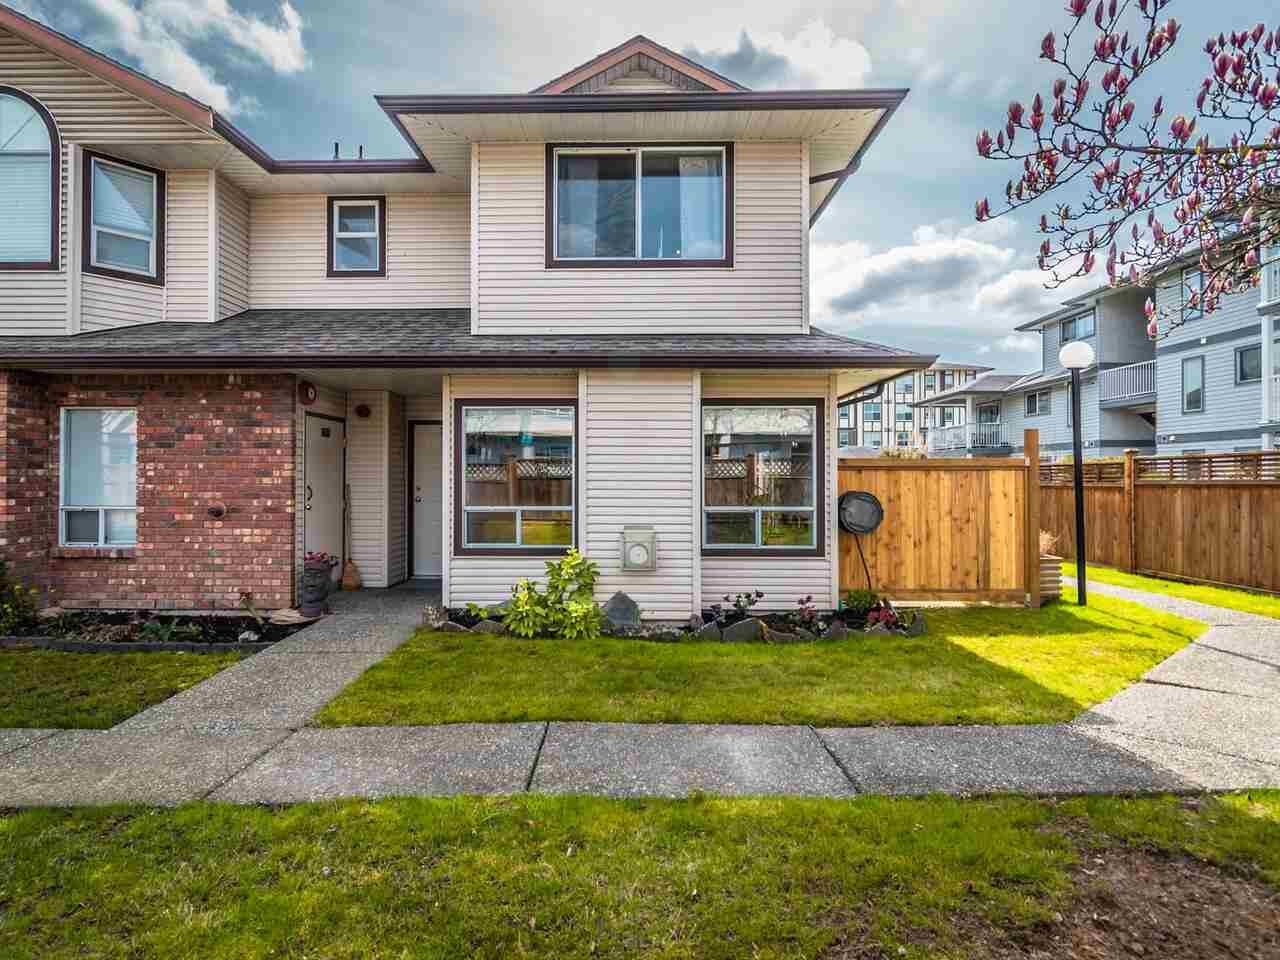 """Main Photo: 106 19908 56 Avenue in Langley: Langley City Townhouse for sale in """"CHENIER PLACE"""" : MLS®# R2561847"""